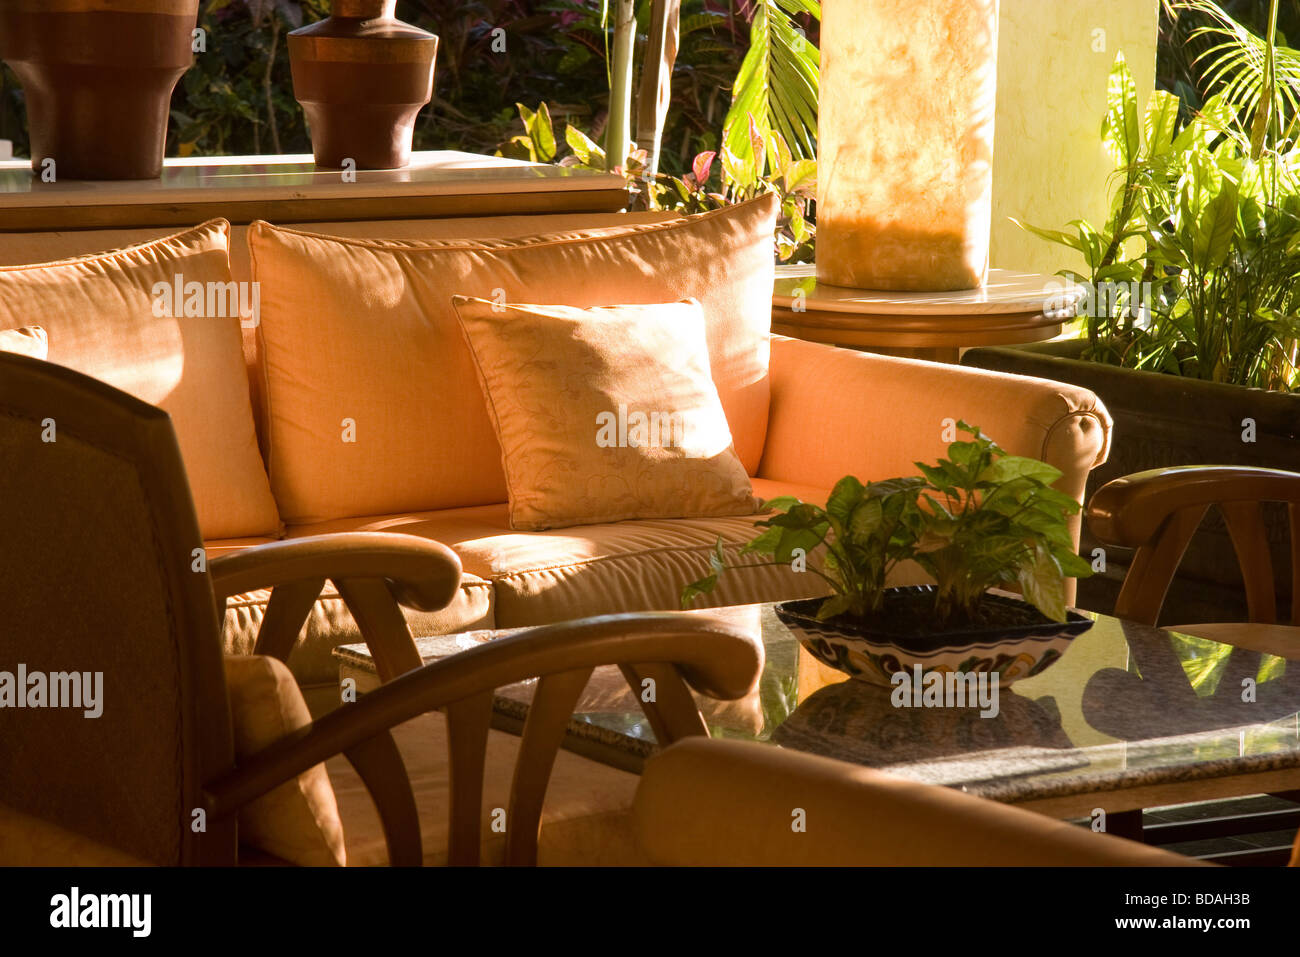 Natural sunlight falls on indoor outdoor patio furniture Stock Photo ...